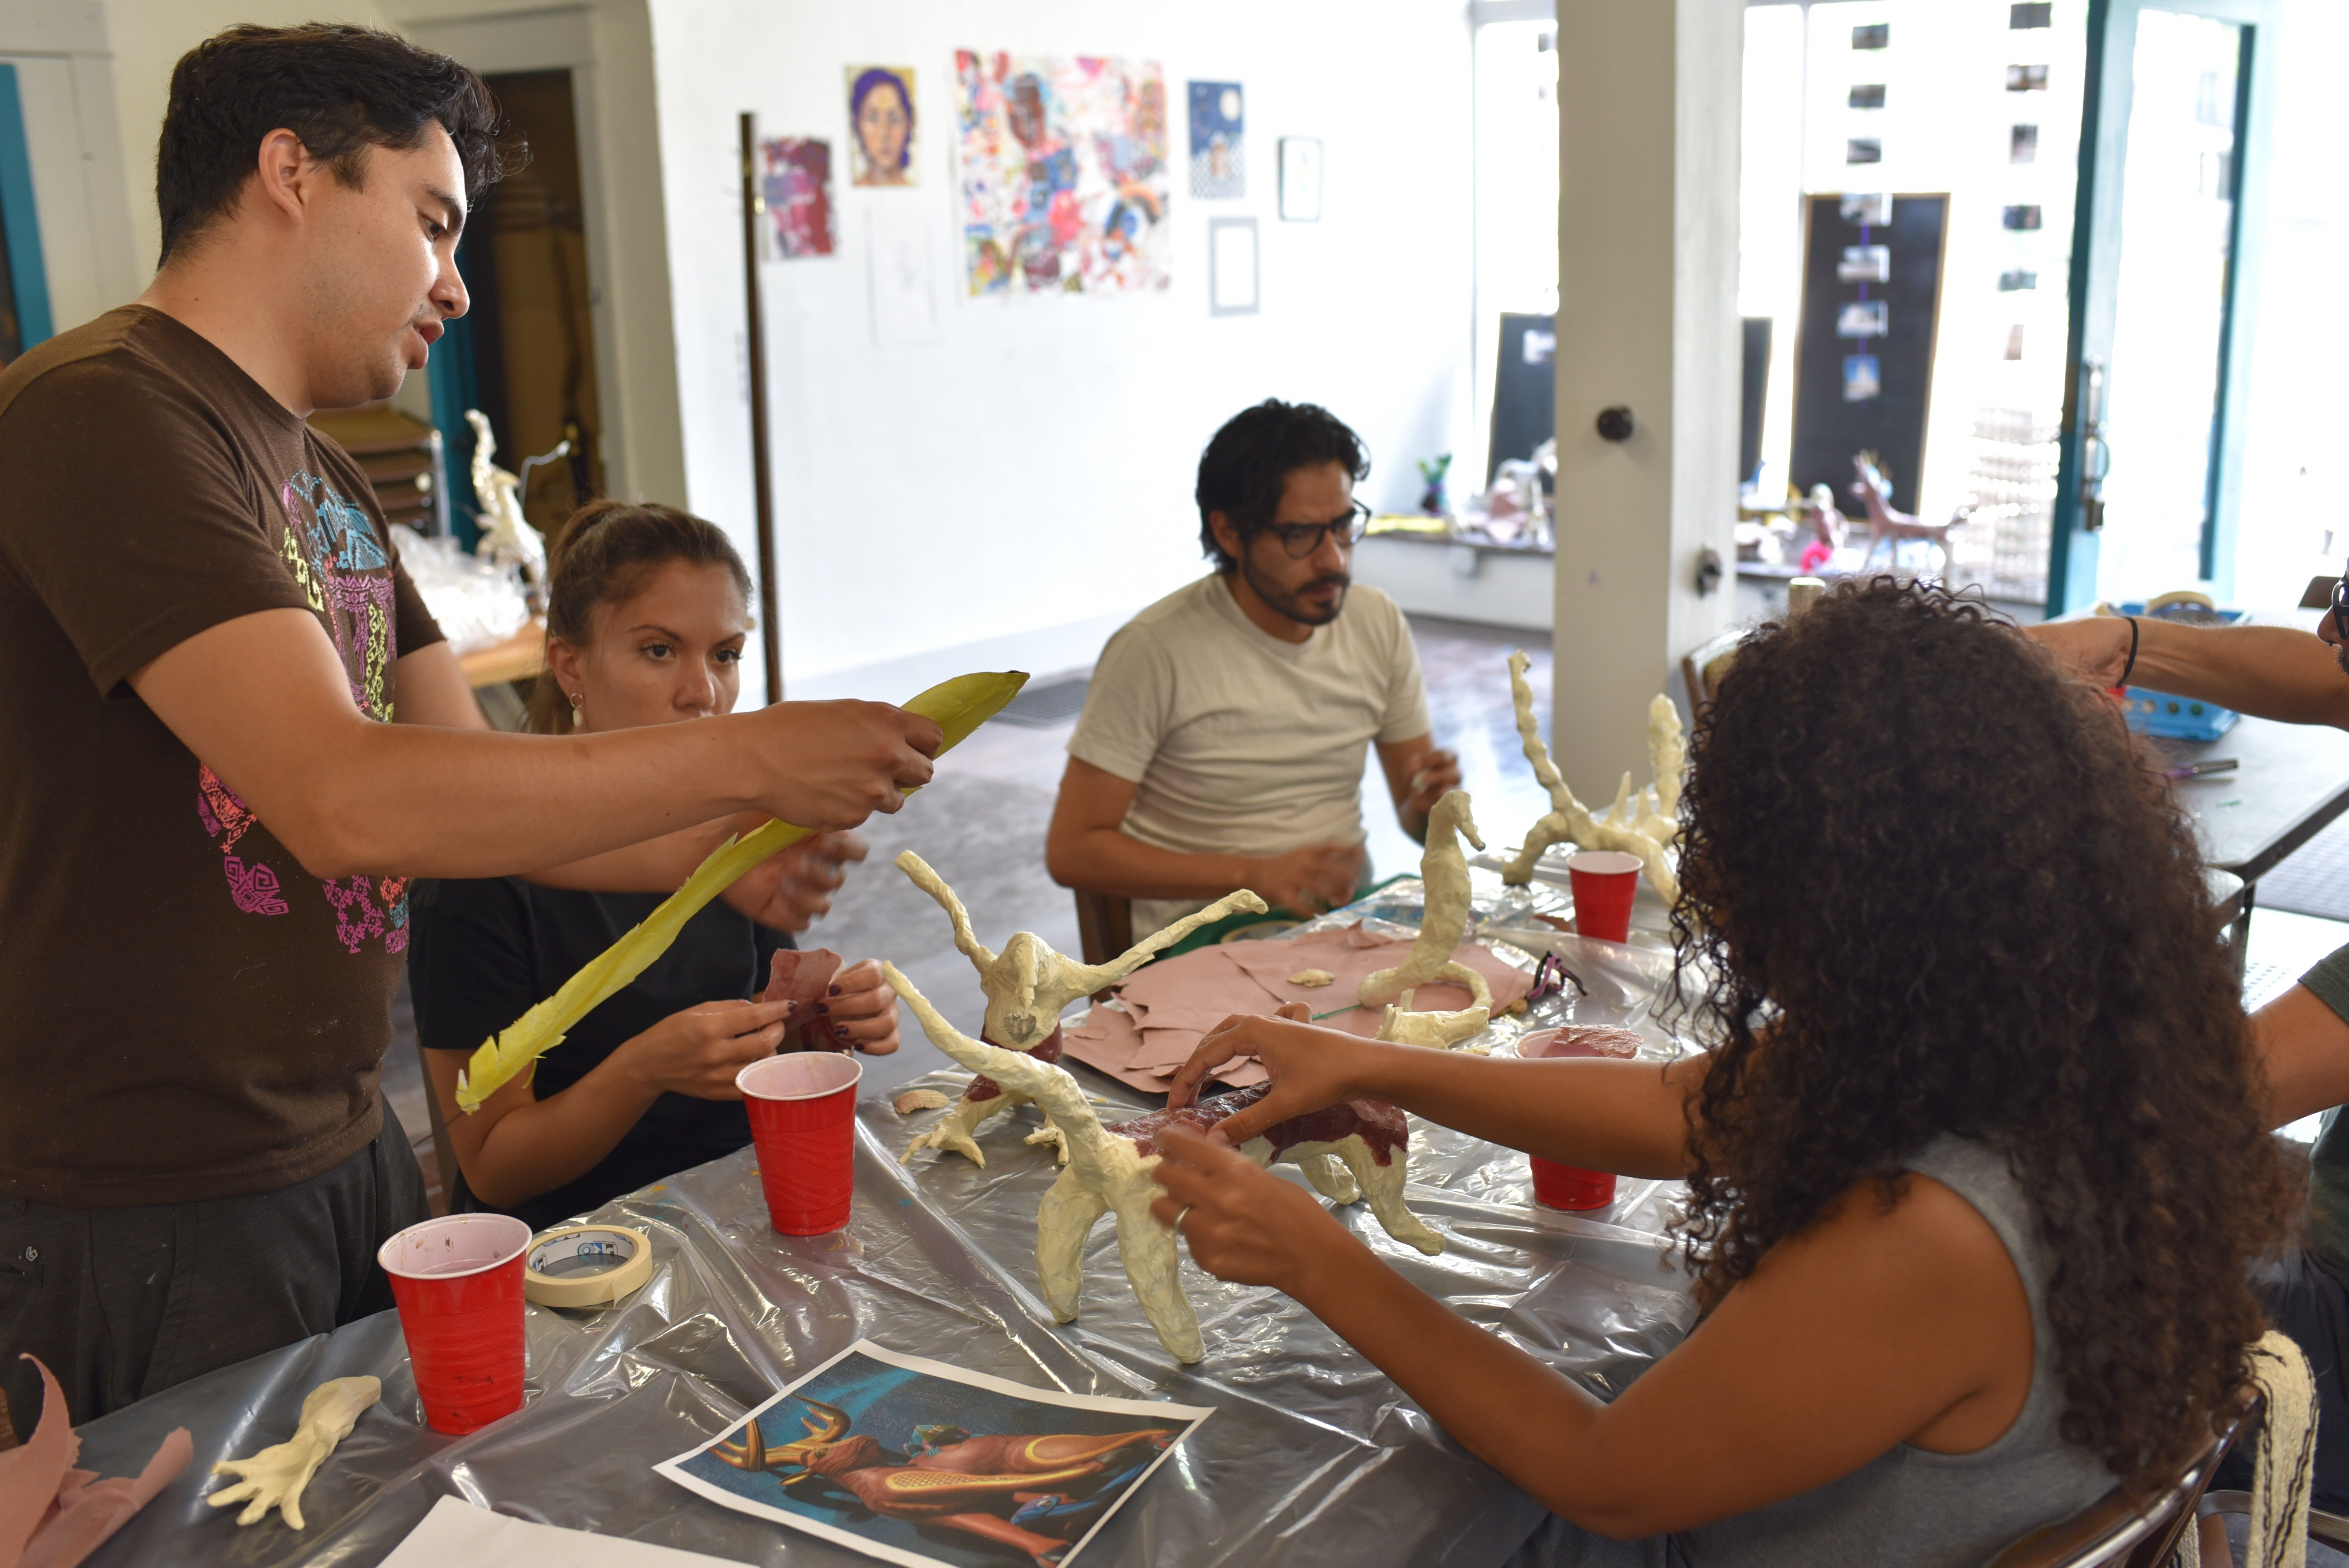 LAC is bringing positive arts experiences to the broadest community possible.